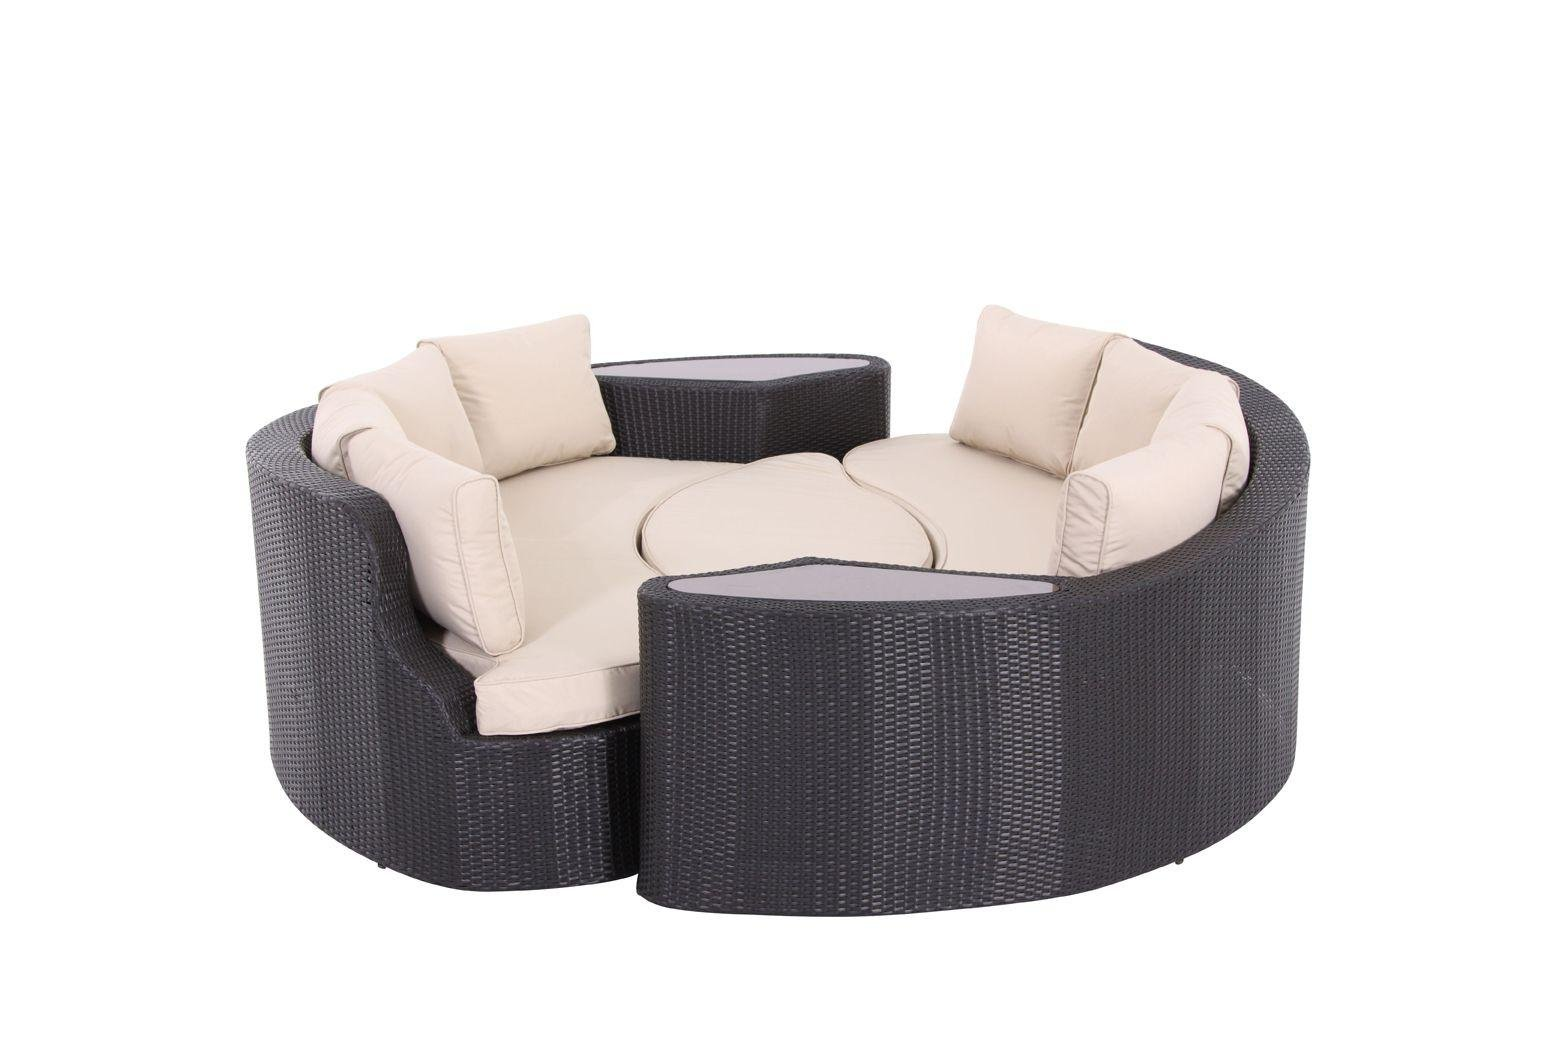 Rattan Effect Recliner Sofa Sale On The Collection Rattan Effect 6 Seater Patio